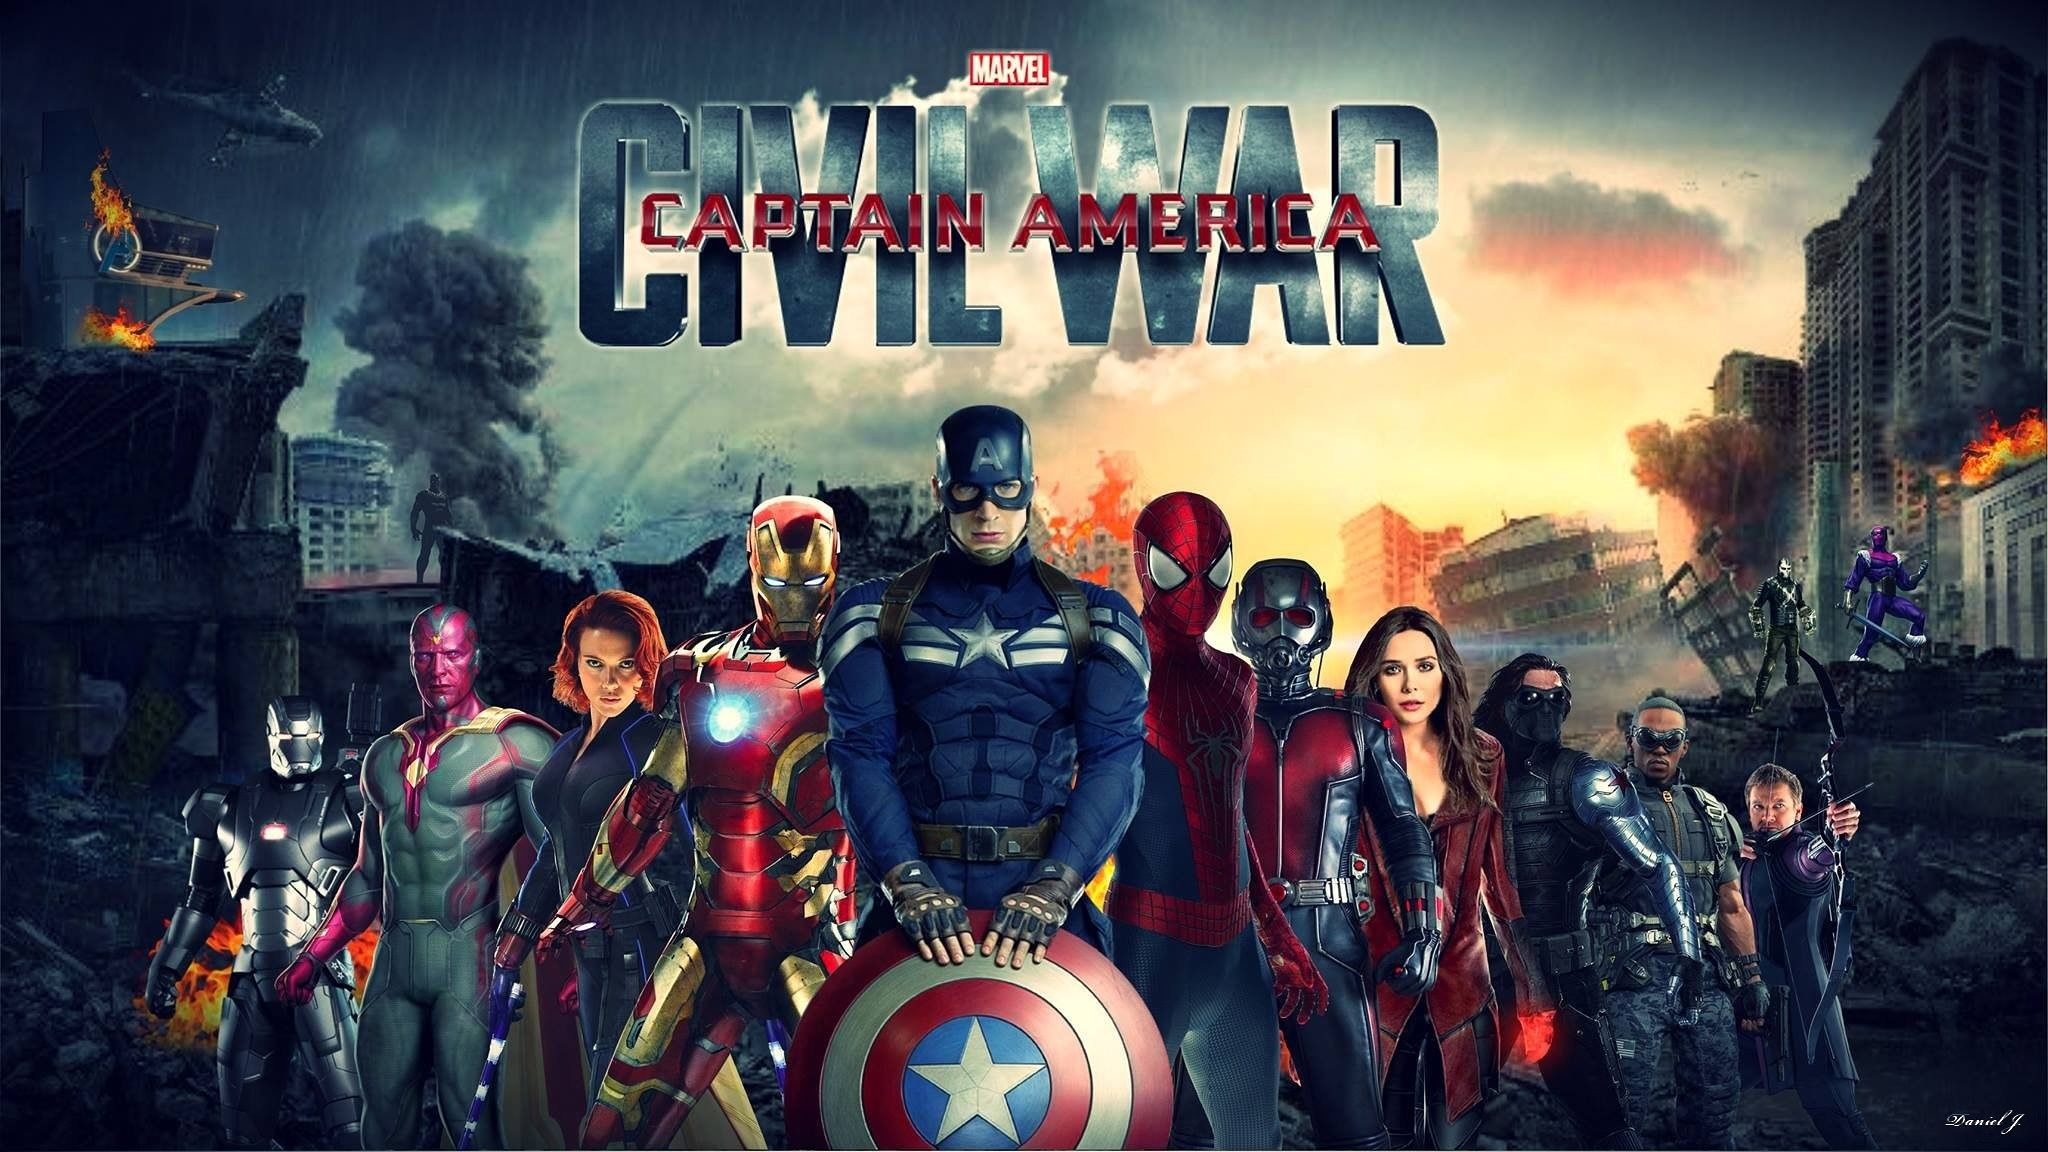 Unduh 200+ Wallpaper Avengers Civil War  Gratis